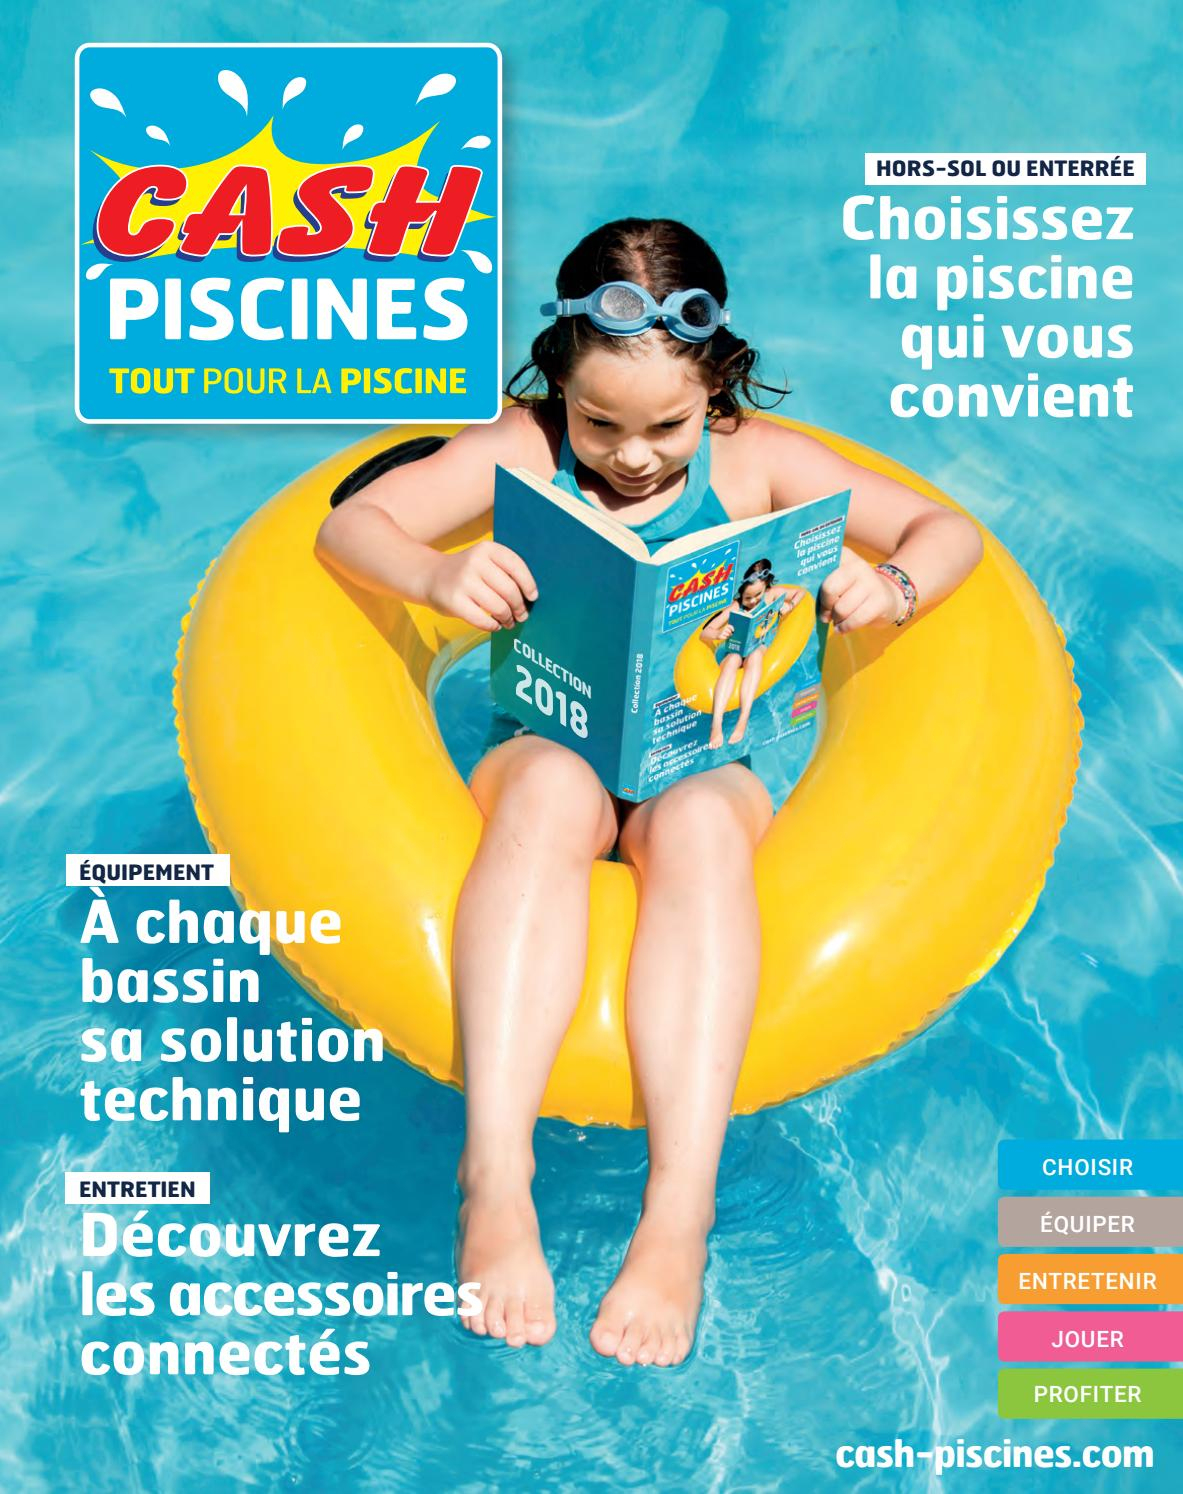 Catalogue Cash Piscine 2018 By Octave Octave - Issuu à Cash Piscine Bourgoin